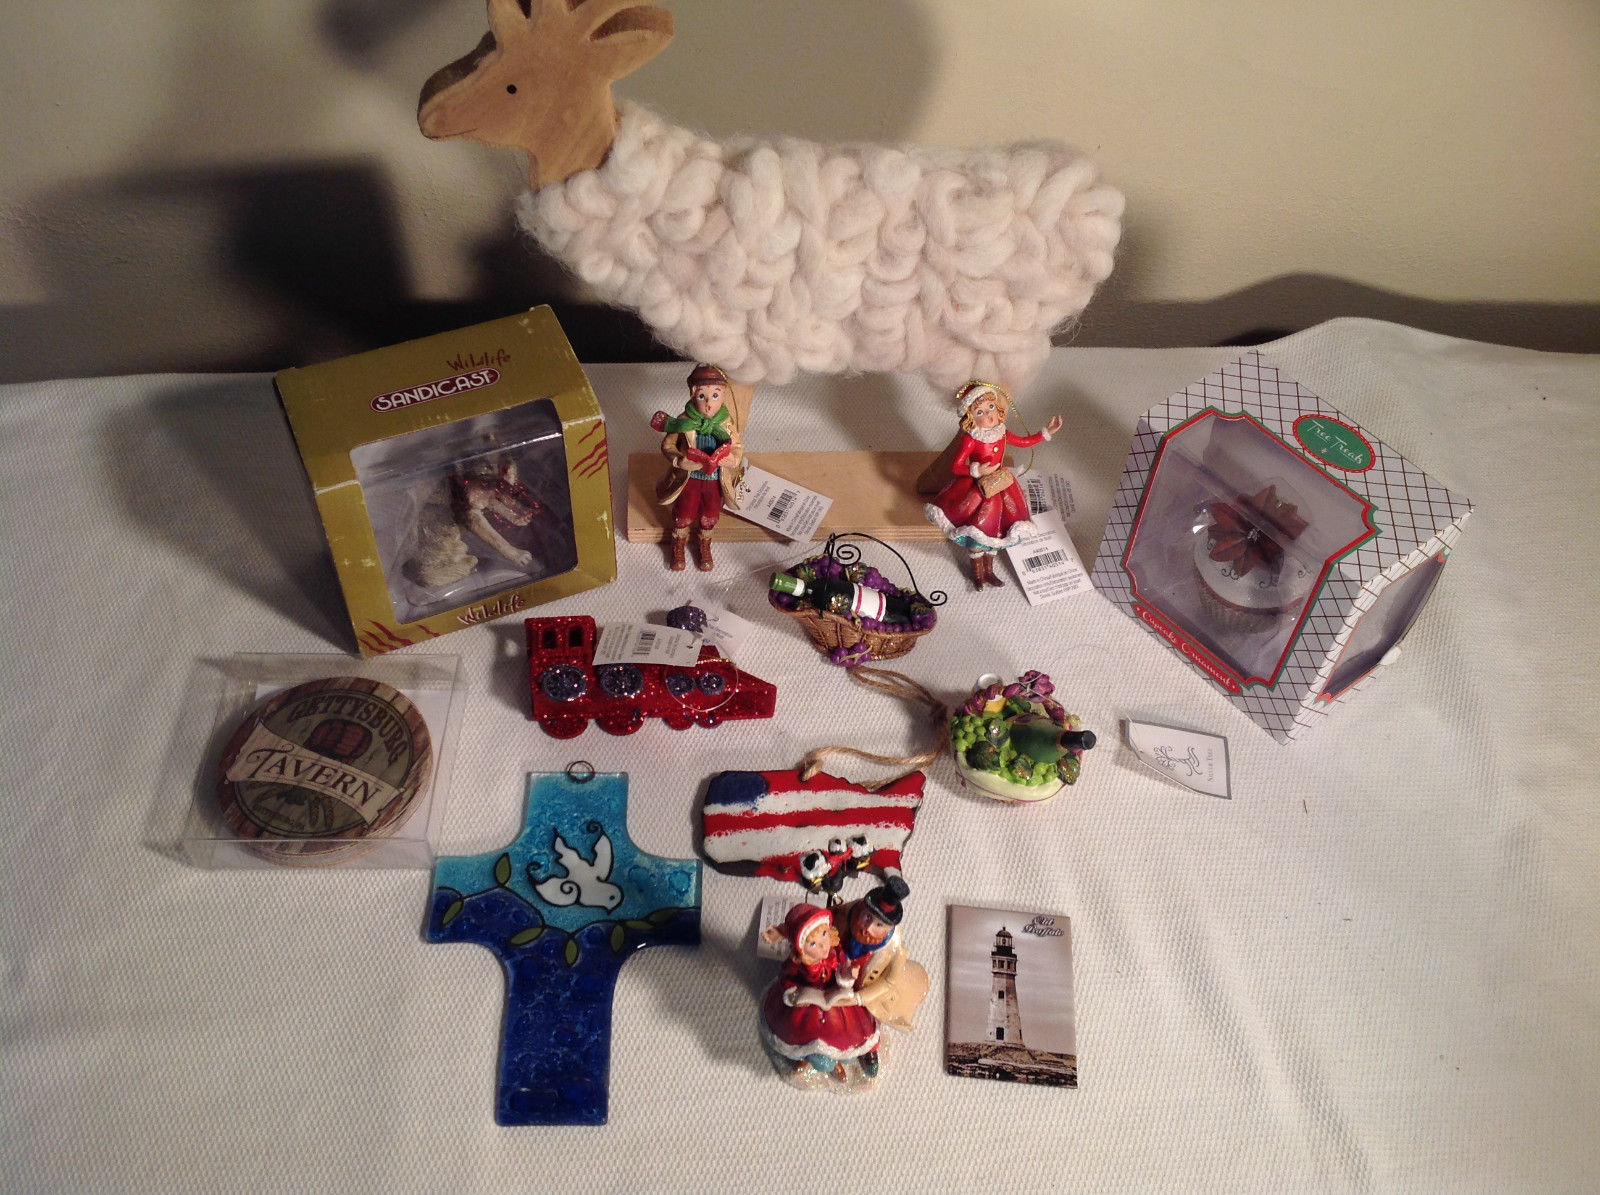 Large lot of Home Decor and Ornaments - x-mas + other, mostly new, wine cupcake